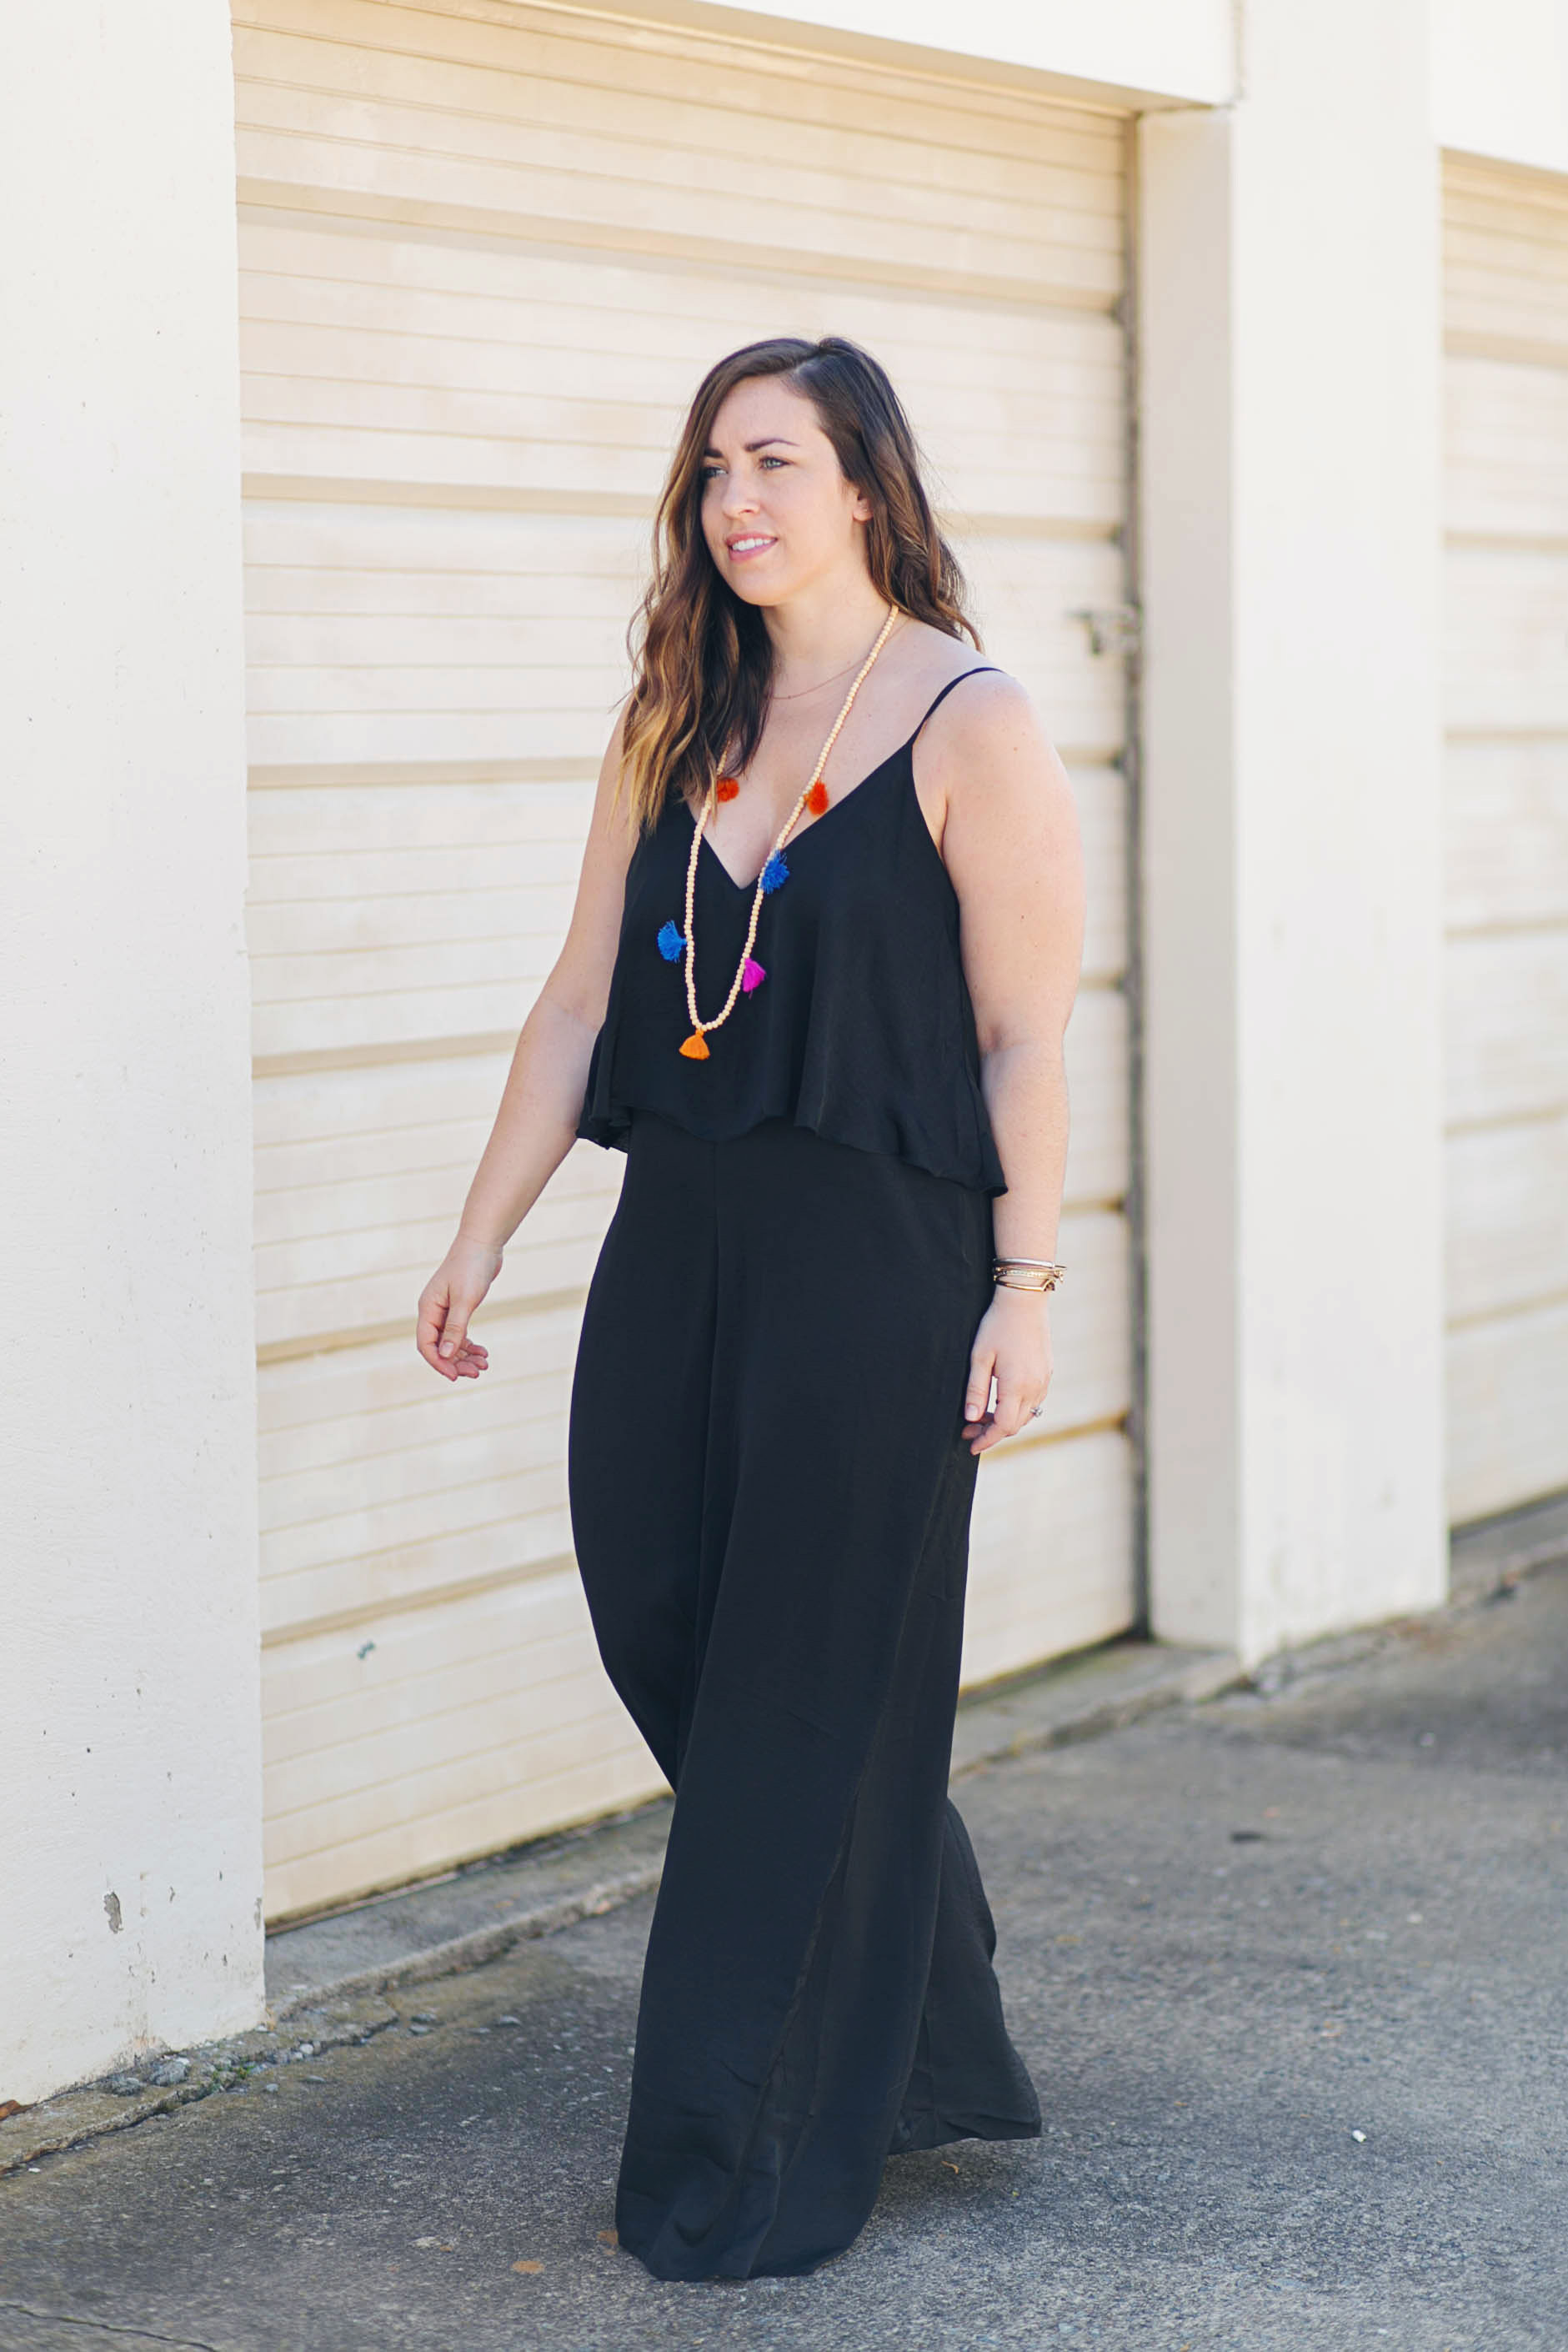 Black Pantsuit | Just Peachy Blog